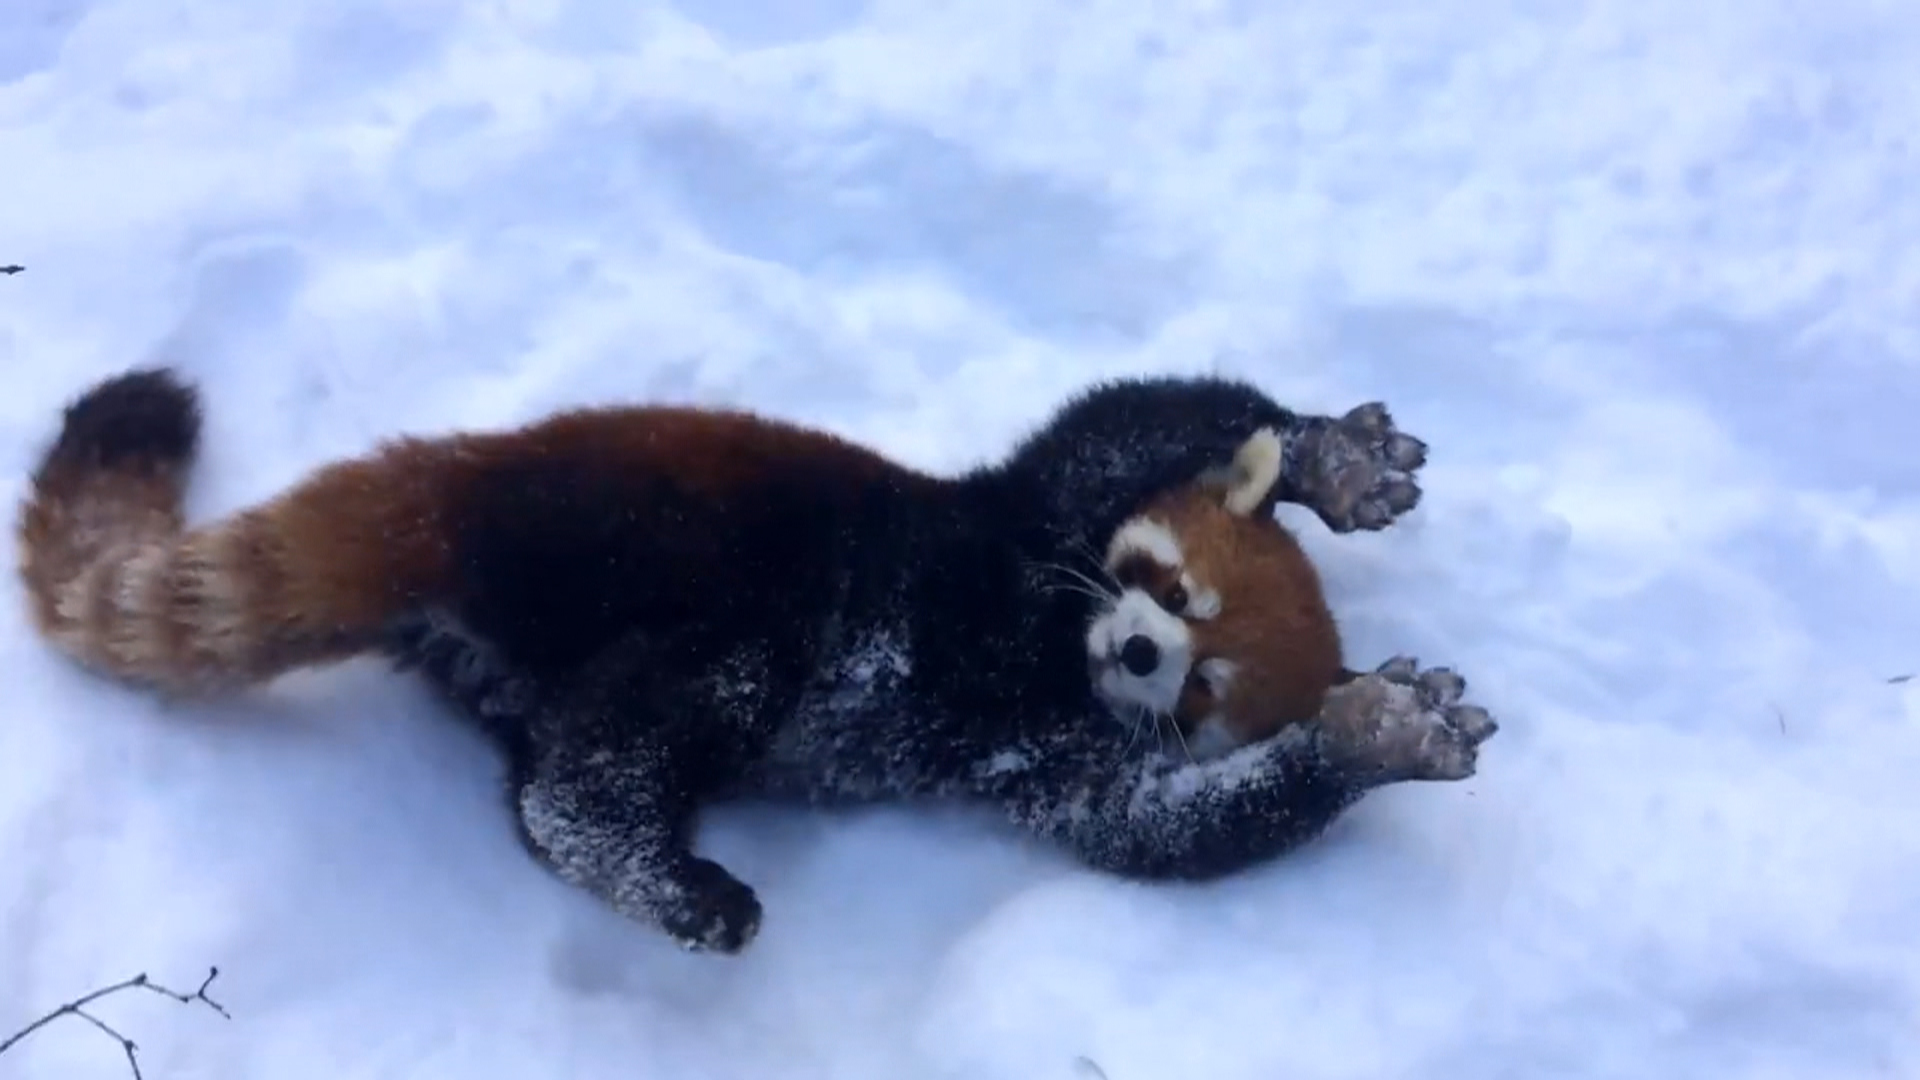 Cute Baby Girl Live Wallpaper Red Pandas Playing In The Snow Is Your Daily Dose Of Cute